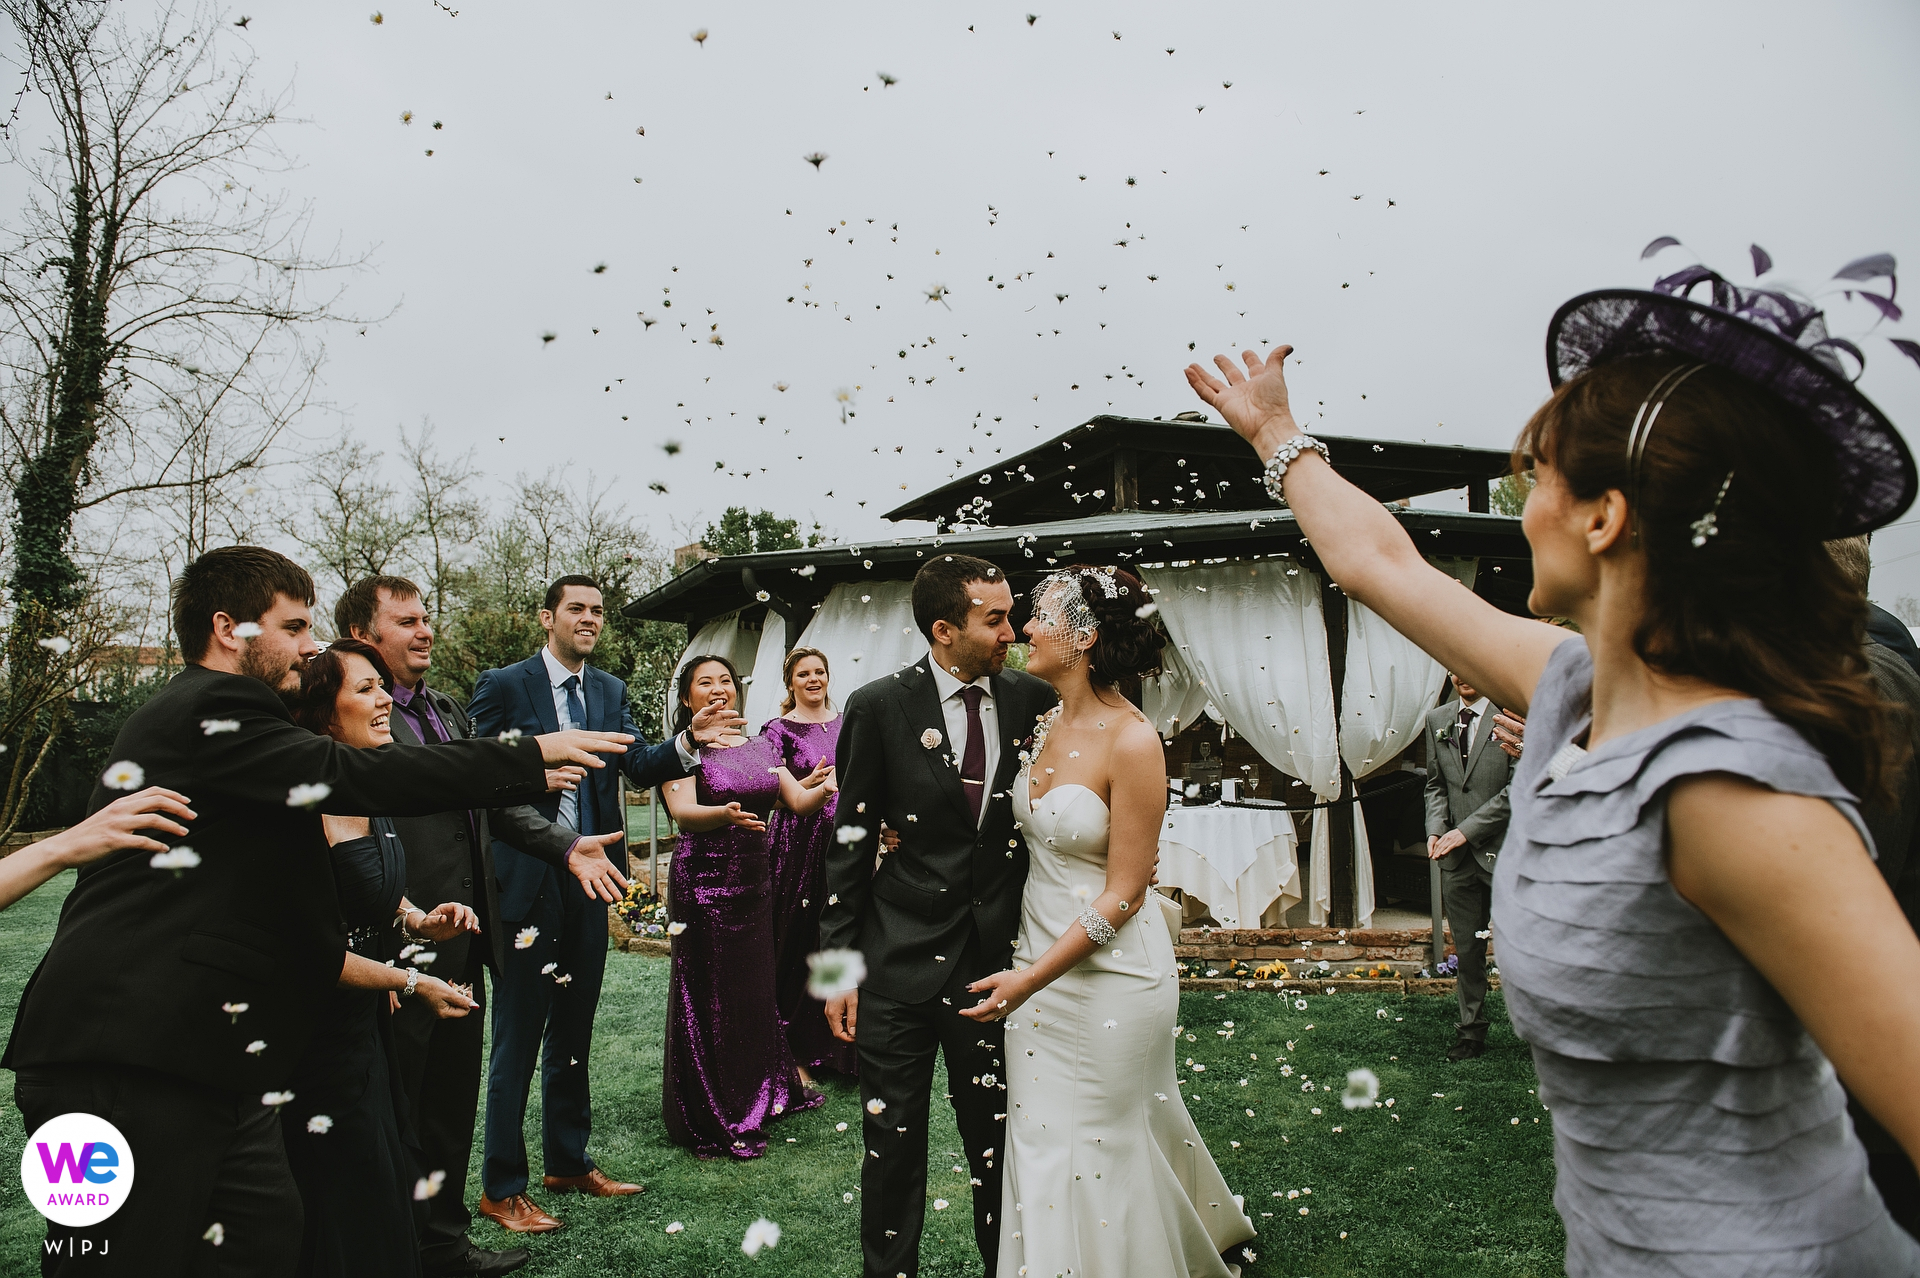 Intimate Torcello Island Elopement Ceremony Picture - the moment of the rice launch for the couple